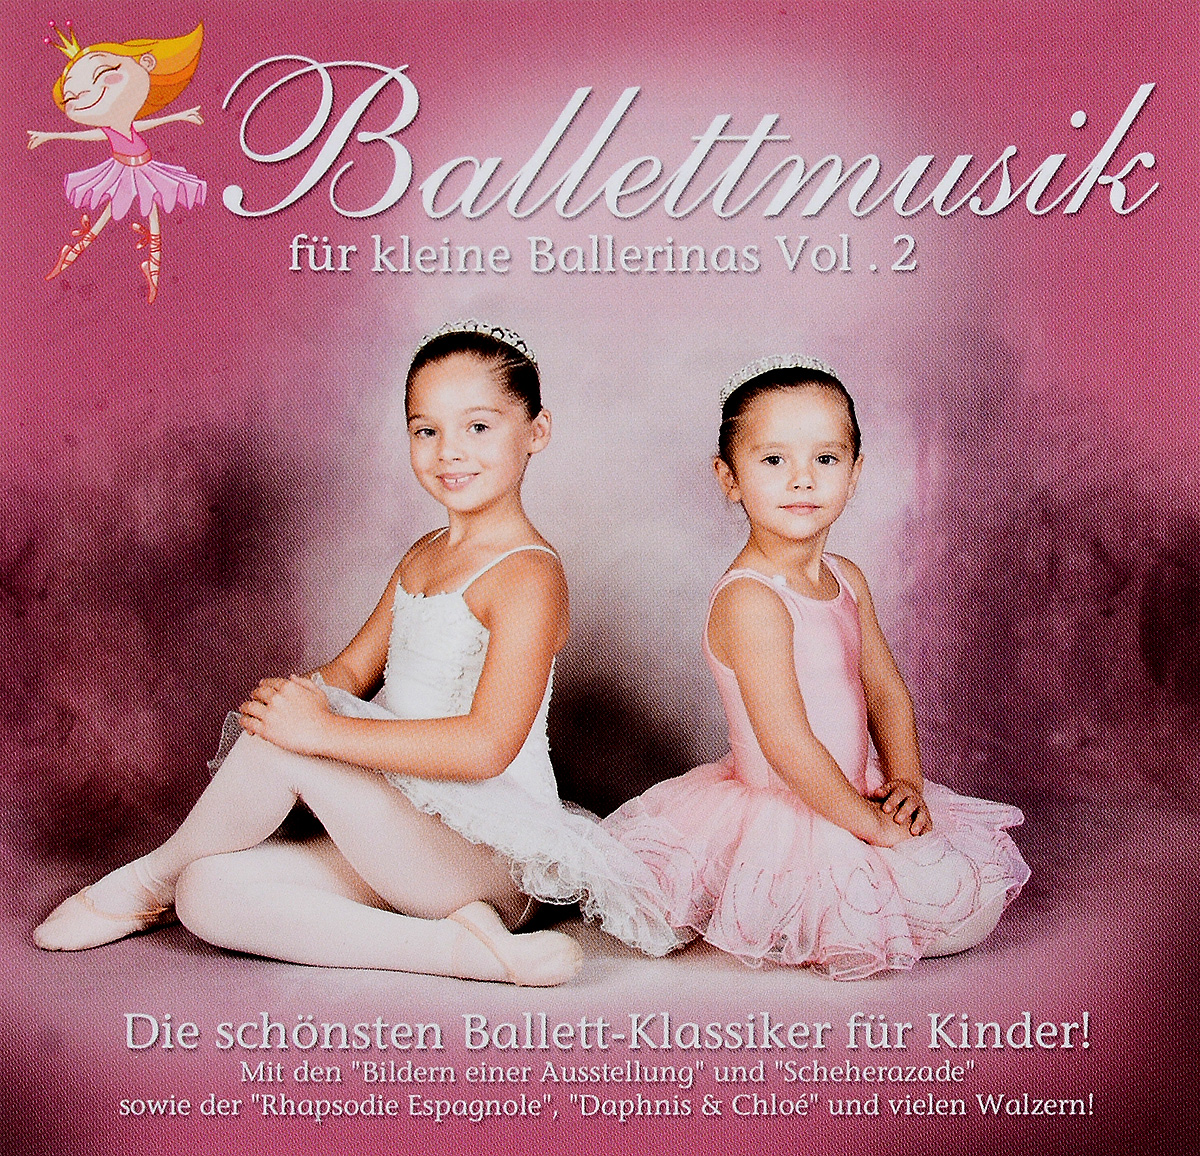 Ballettmusik Fur Kleine Ballerinas Volume 2 2 CD